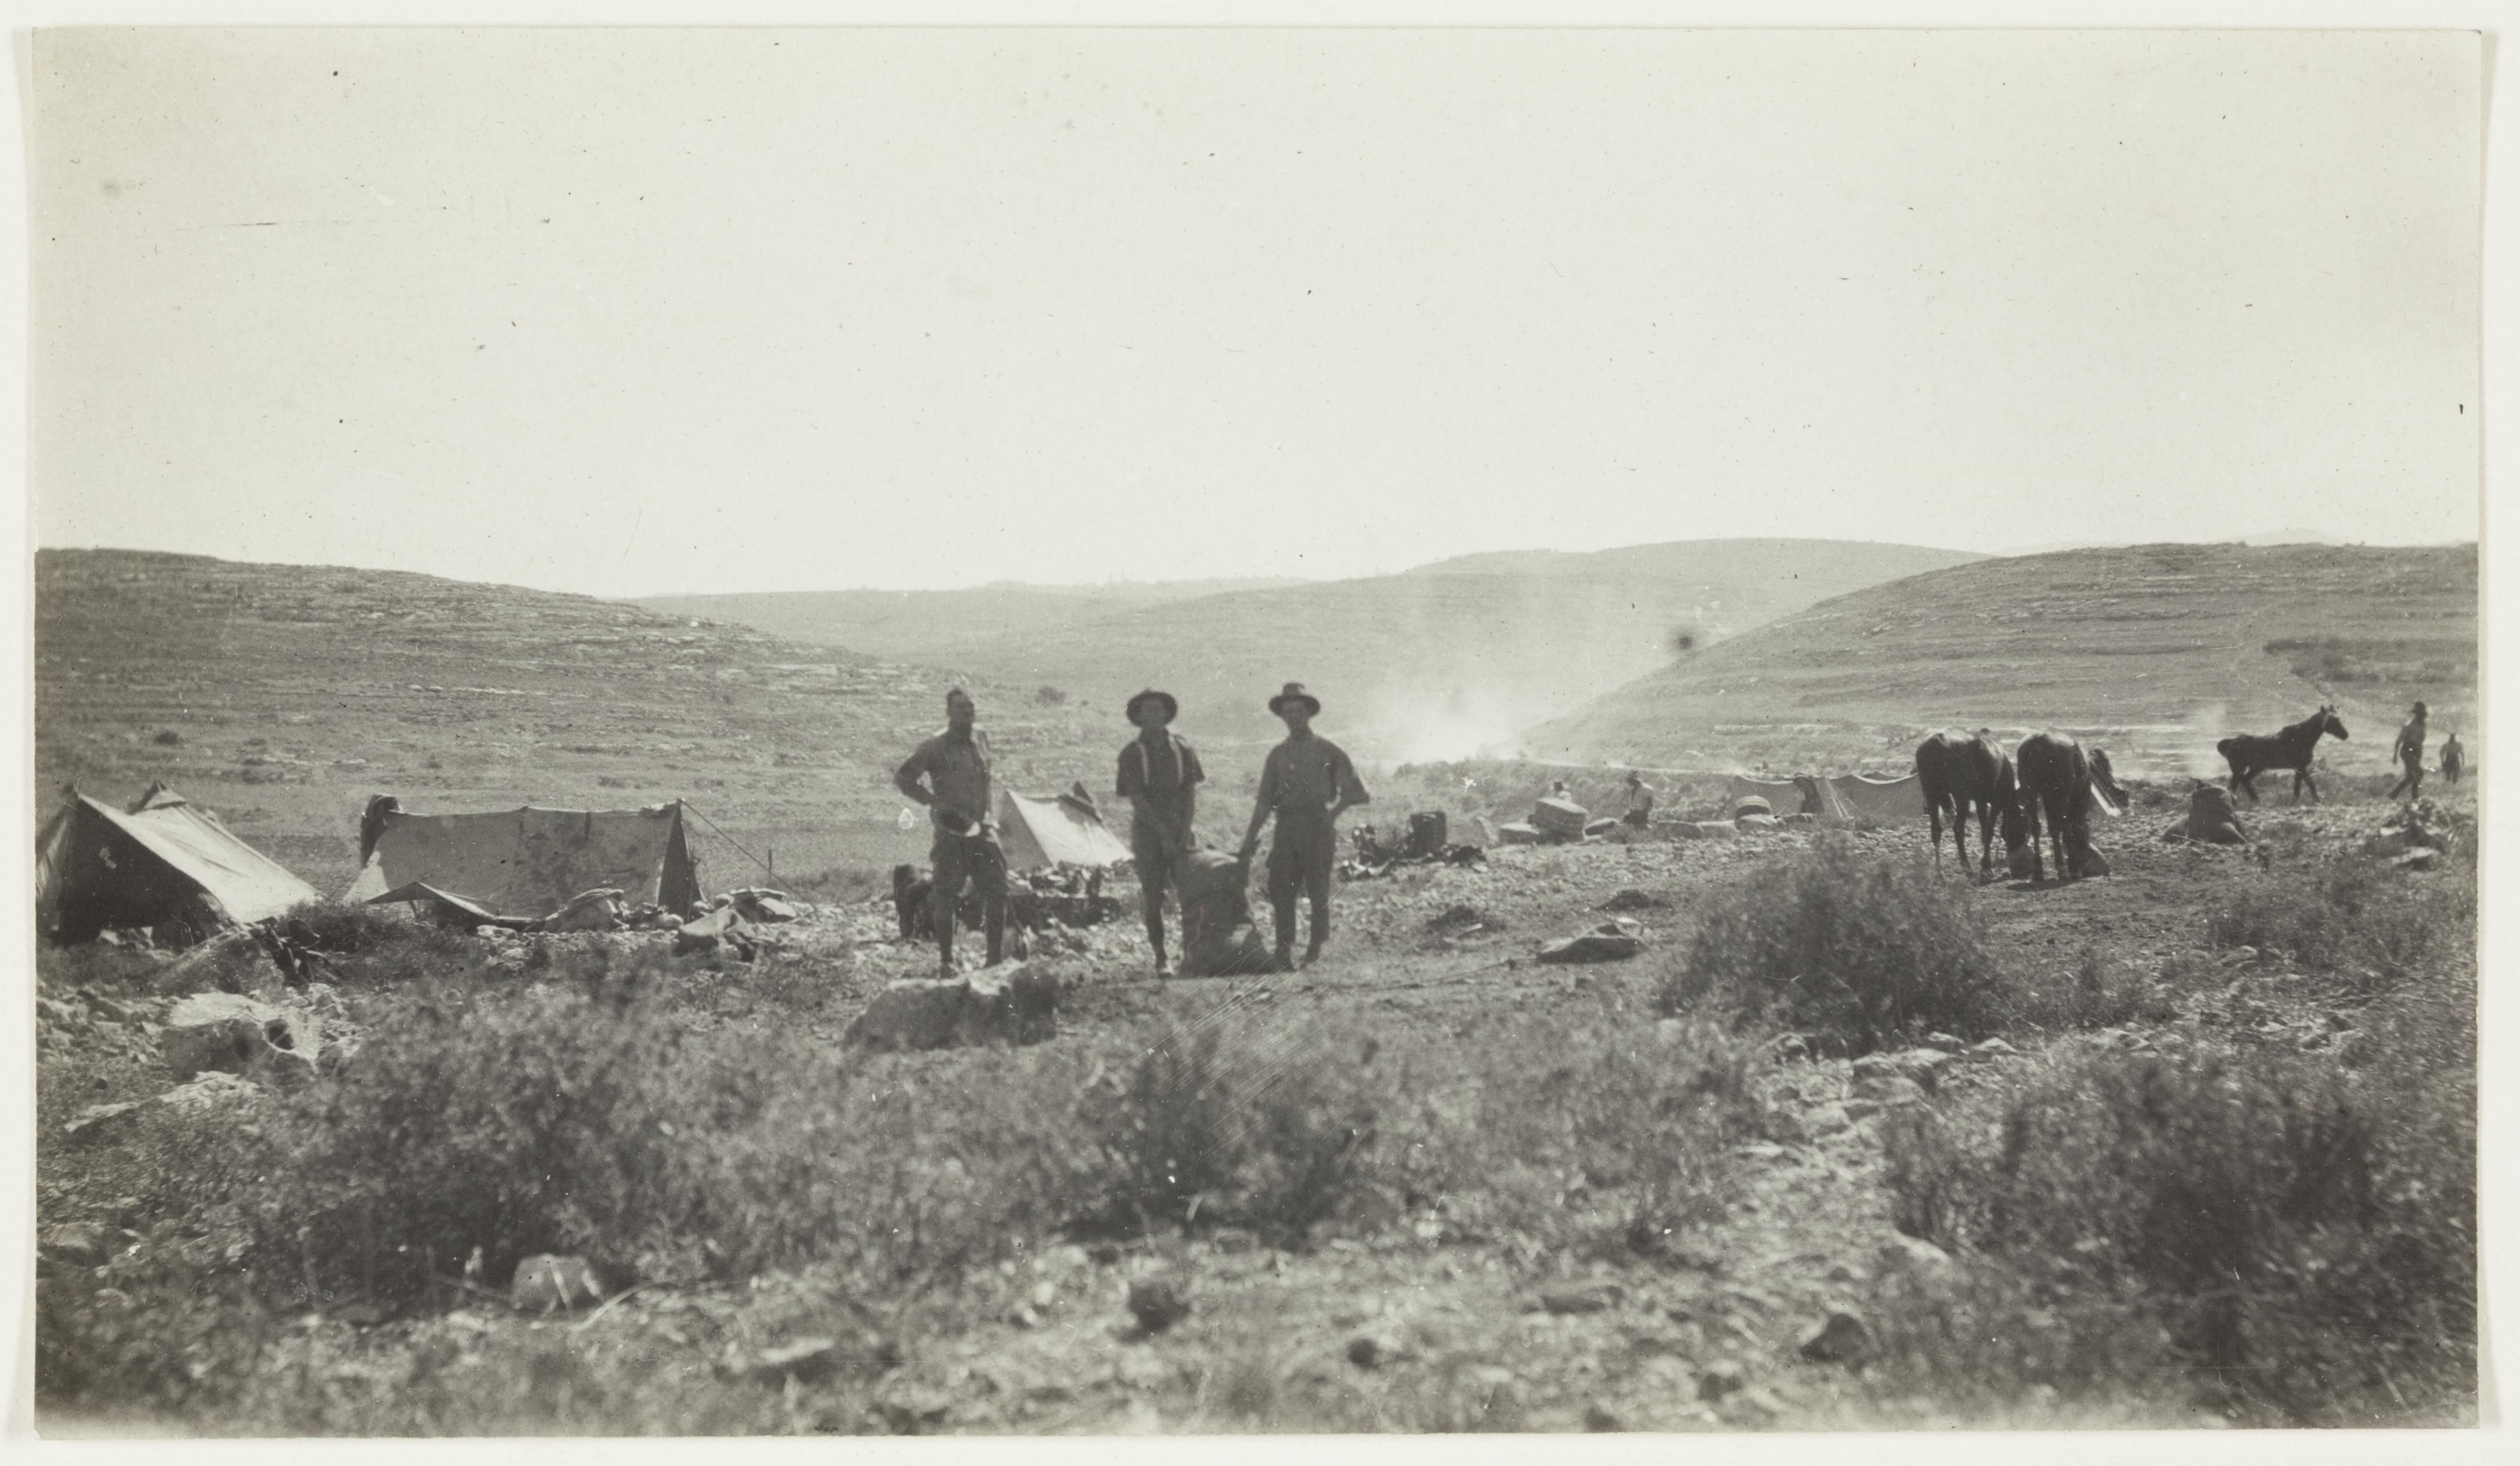 Camp at Bethlehem  by J.F. Smith of the 7th Light Horse in Egypt and Palestine, c. 1914-1918